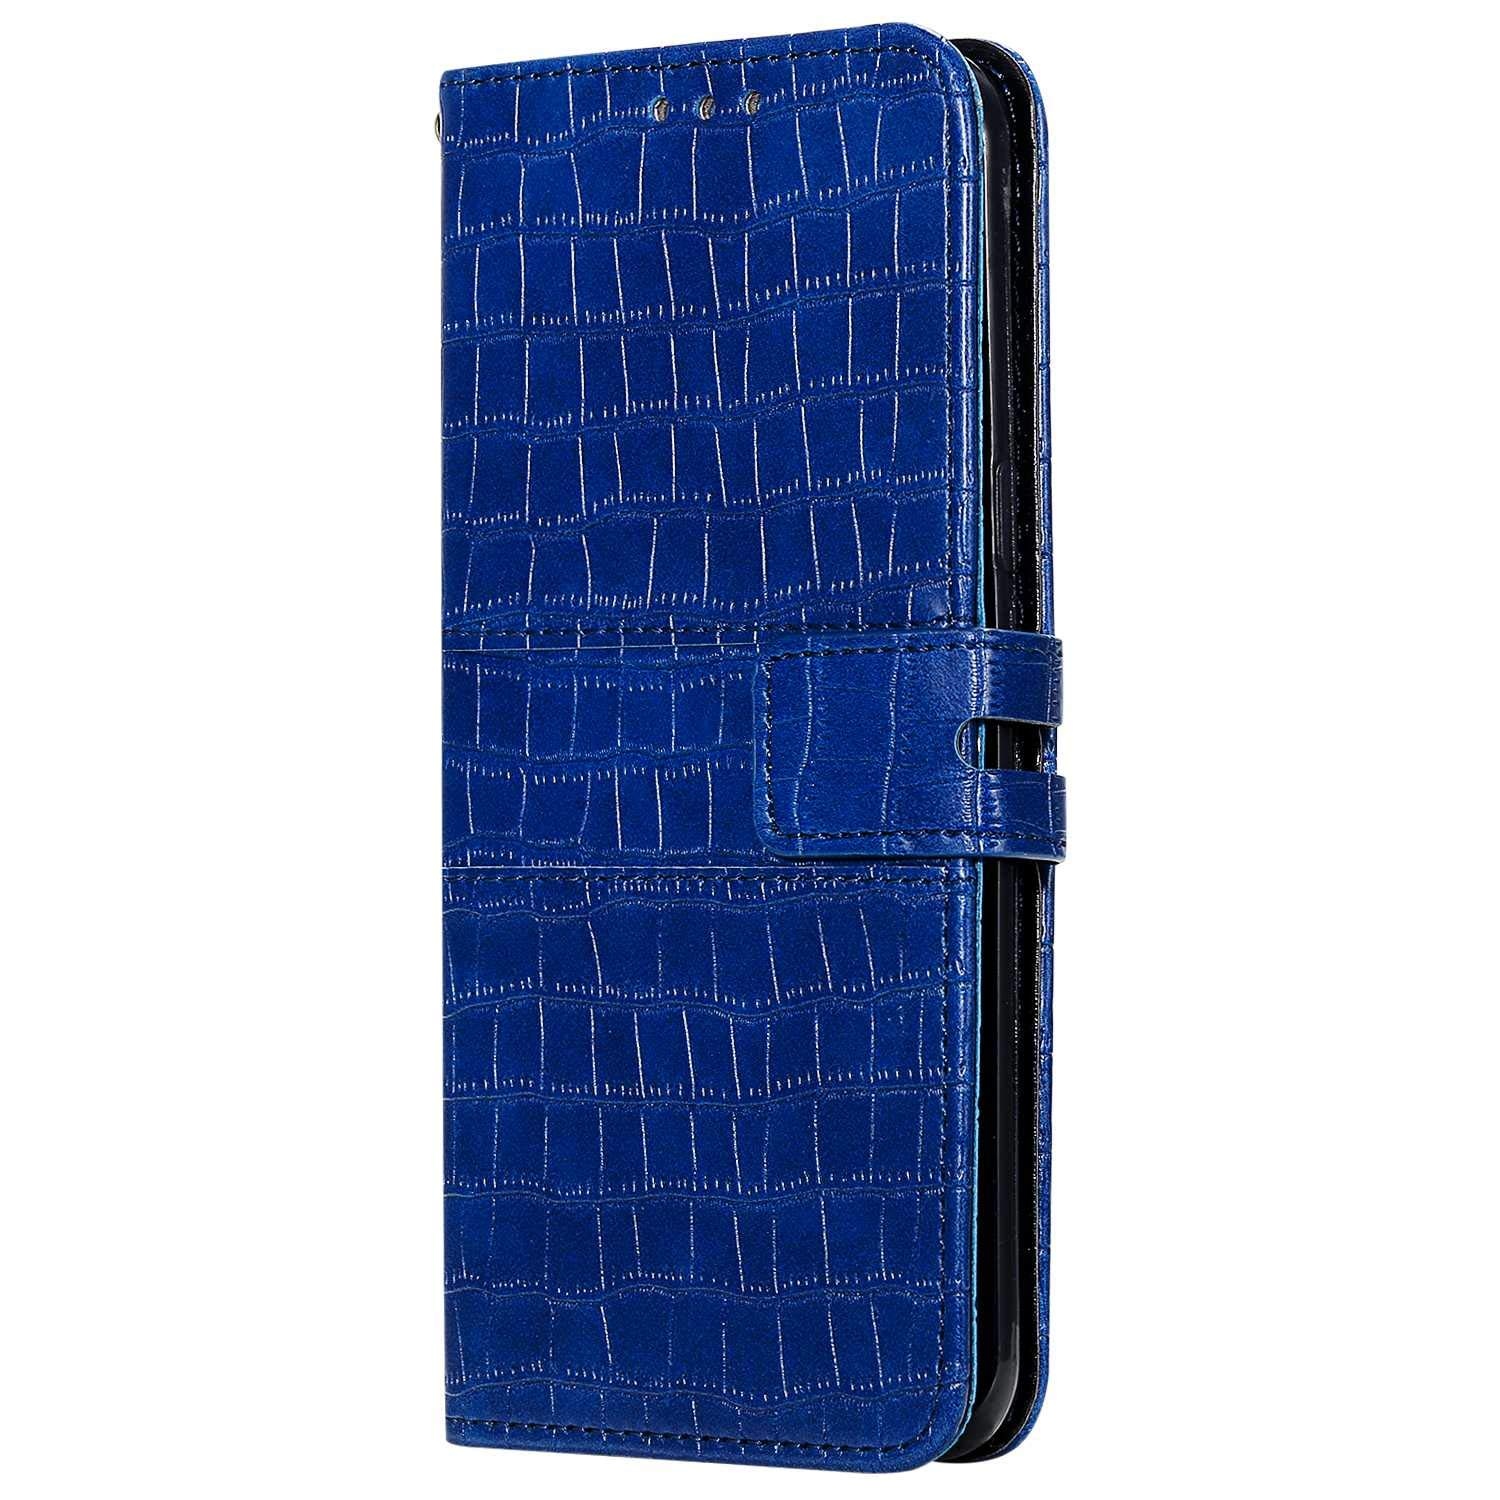 Book Style Case with Card Holder and Magnetic Closure Xiaomi Redmi Note 8 Case The Grafu Shockproof Flip Folio PU Leather Wallet Cover for Xiaomi Redmi Note 8 Red